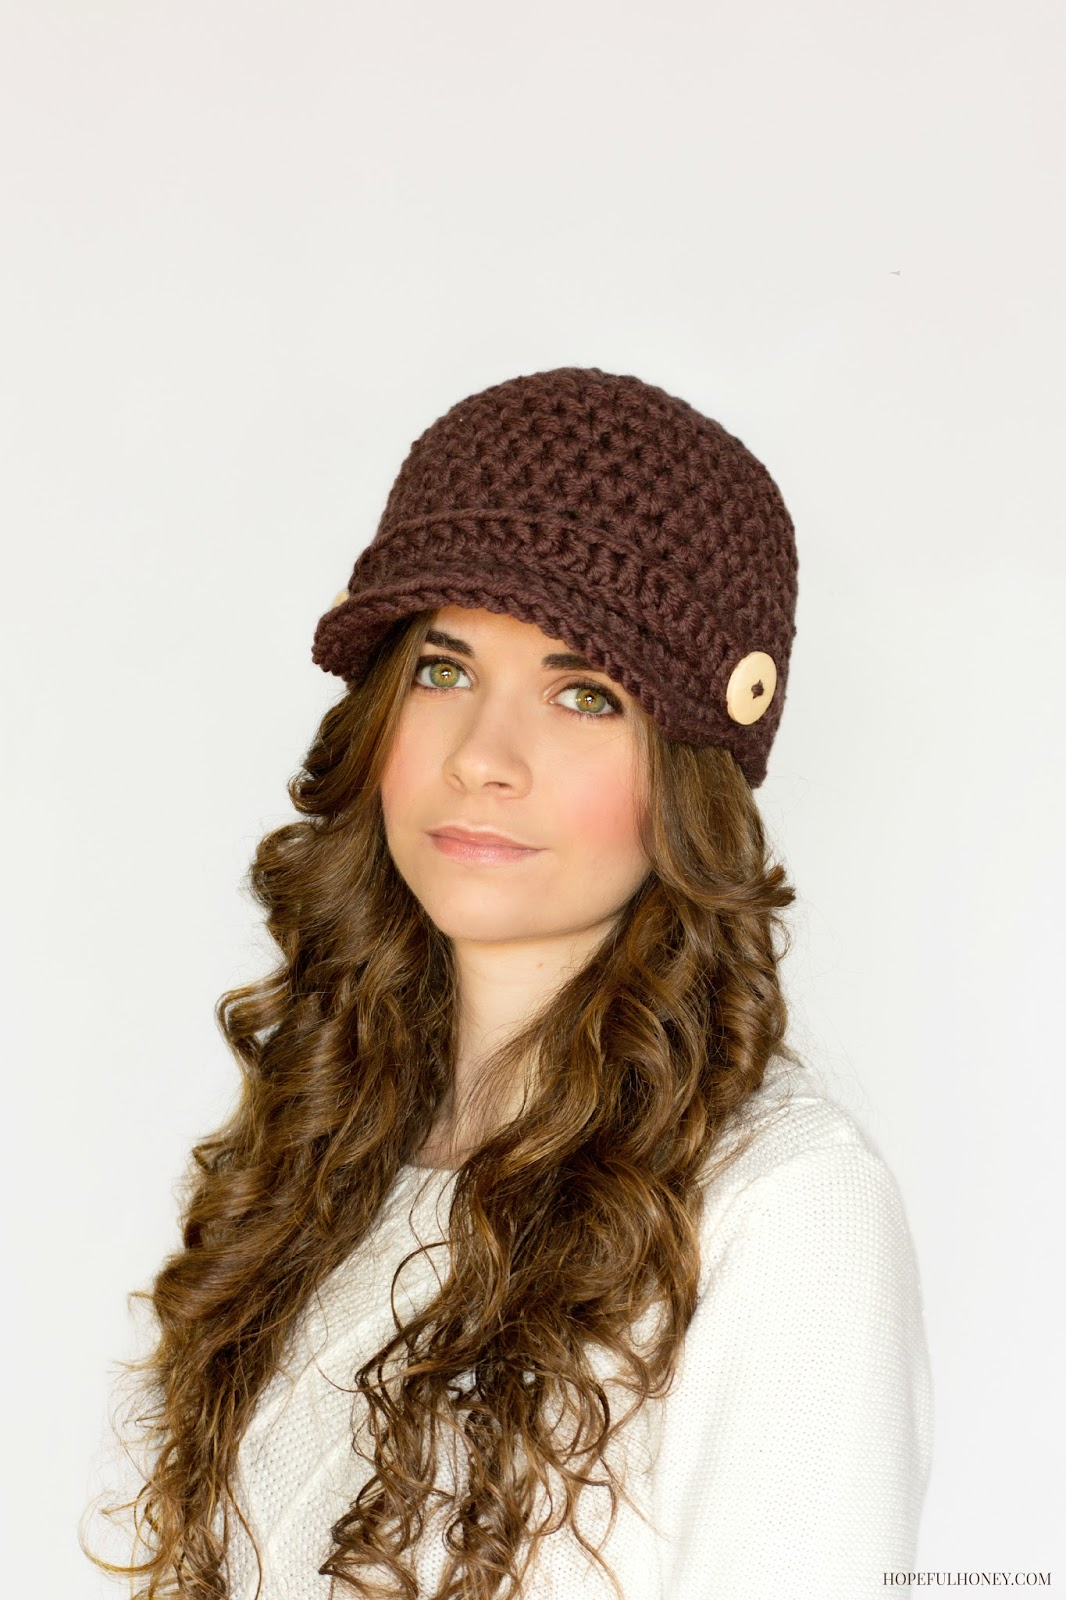 ... Honey Craft, Crochet, Create: Nifty Newsboy Hat Crochet Pattern